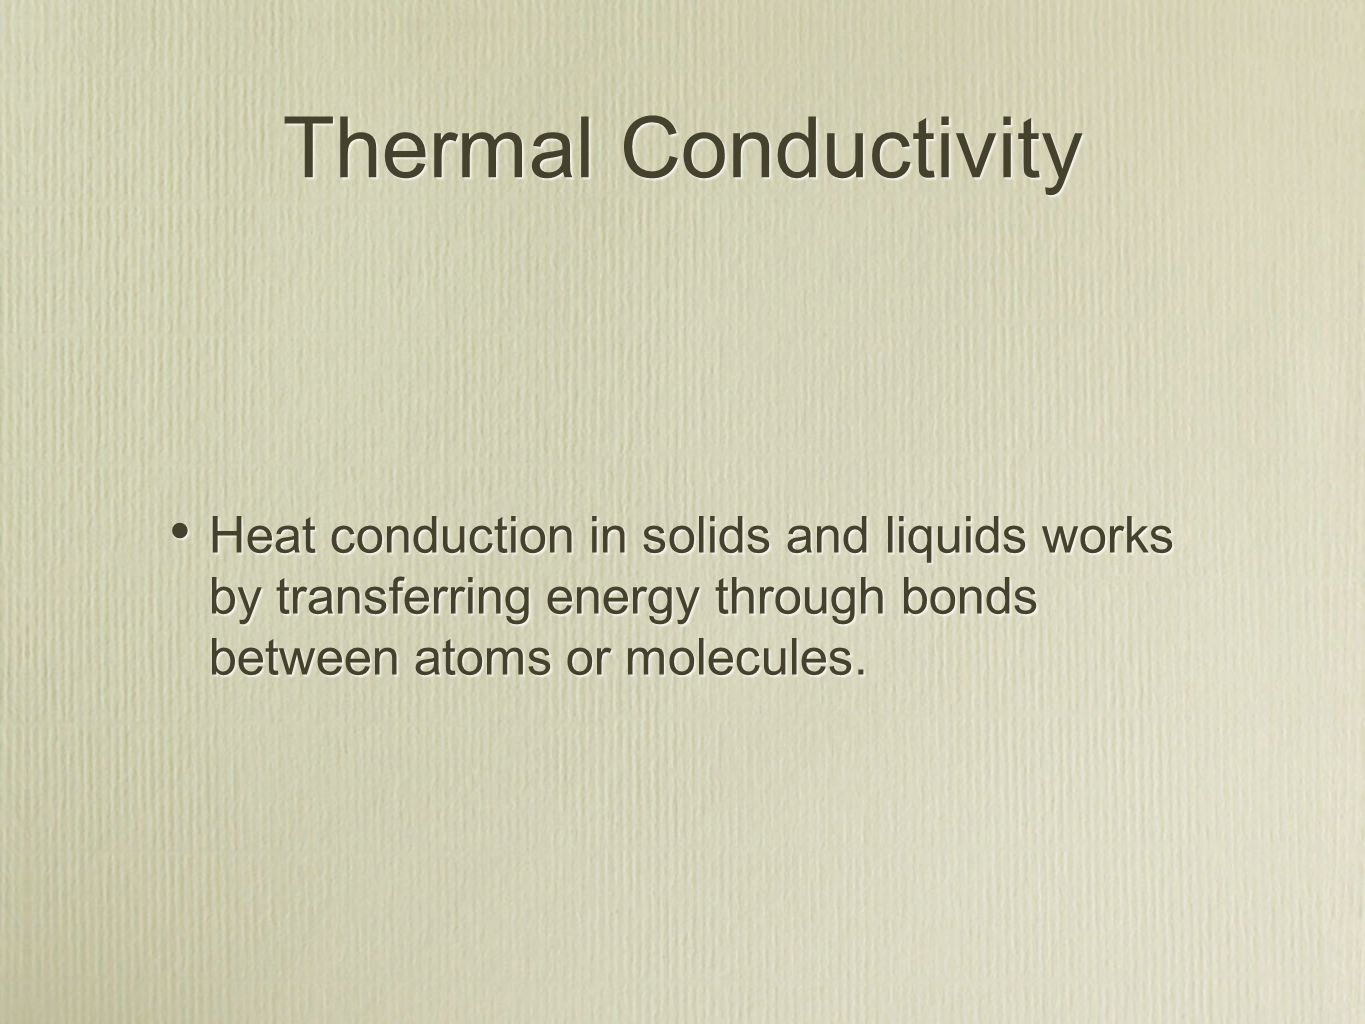 Thermal Conductivity Heat conduction in solids and liquids works by transferring energy through bonds between atoms or molecules.